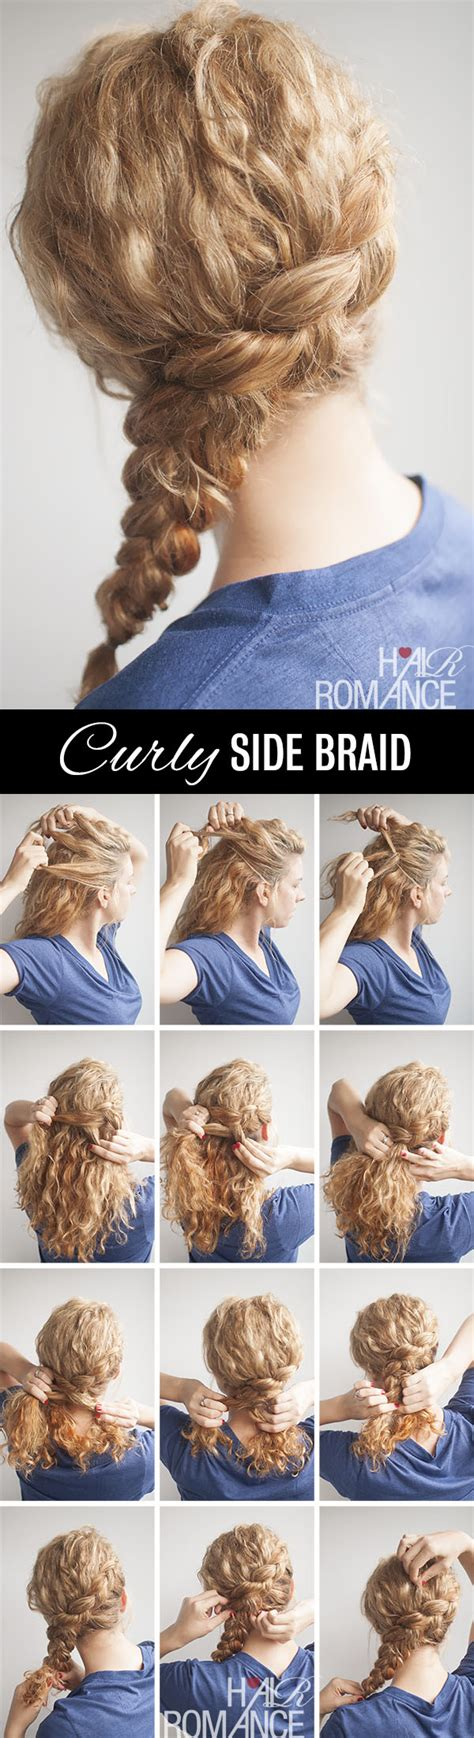 hairstyles with curls and braids step by step diy side hairstyle step by step tutorials diy ideas tips